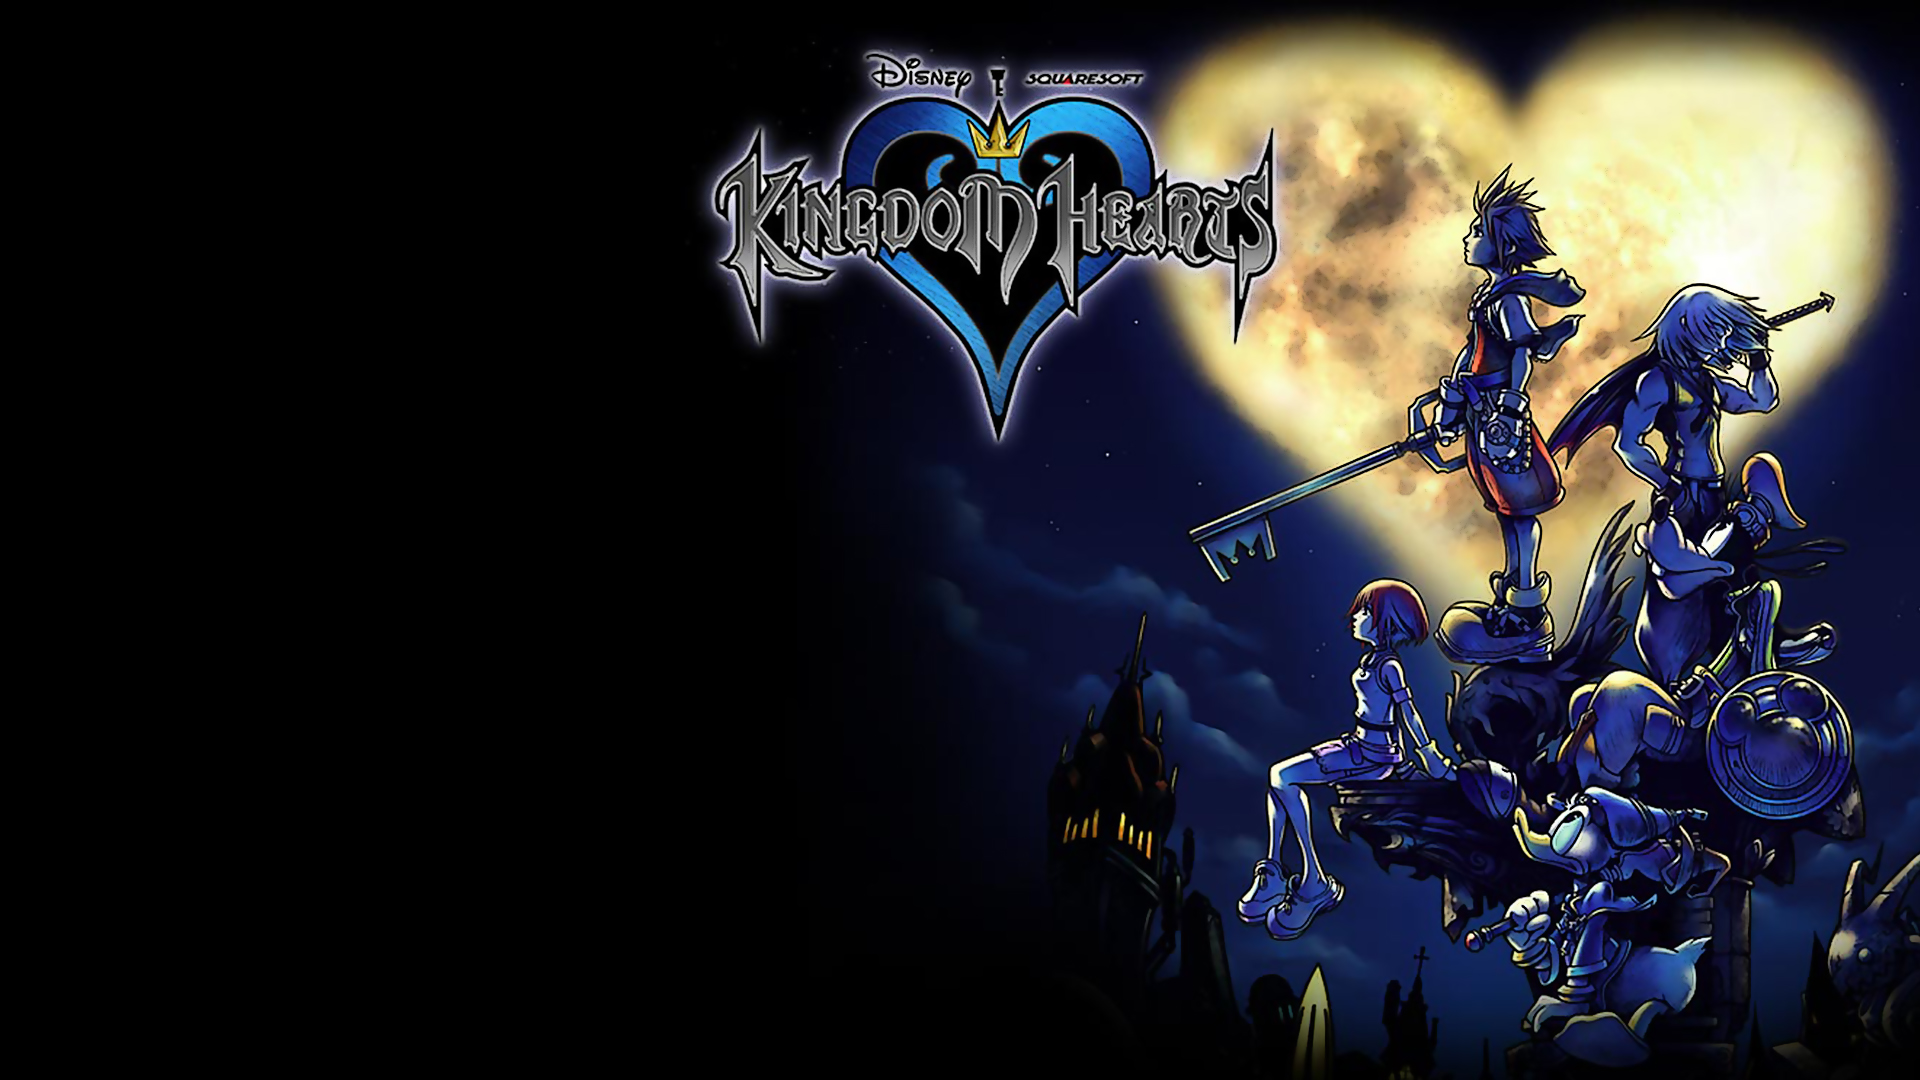 Free Download Kingdom Hearts Wallpaper Hd Wallpaper 928300